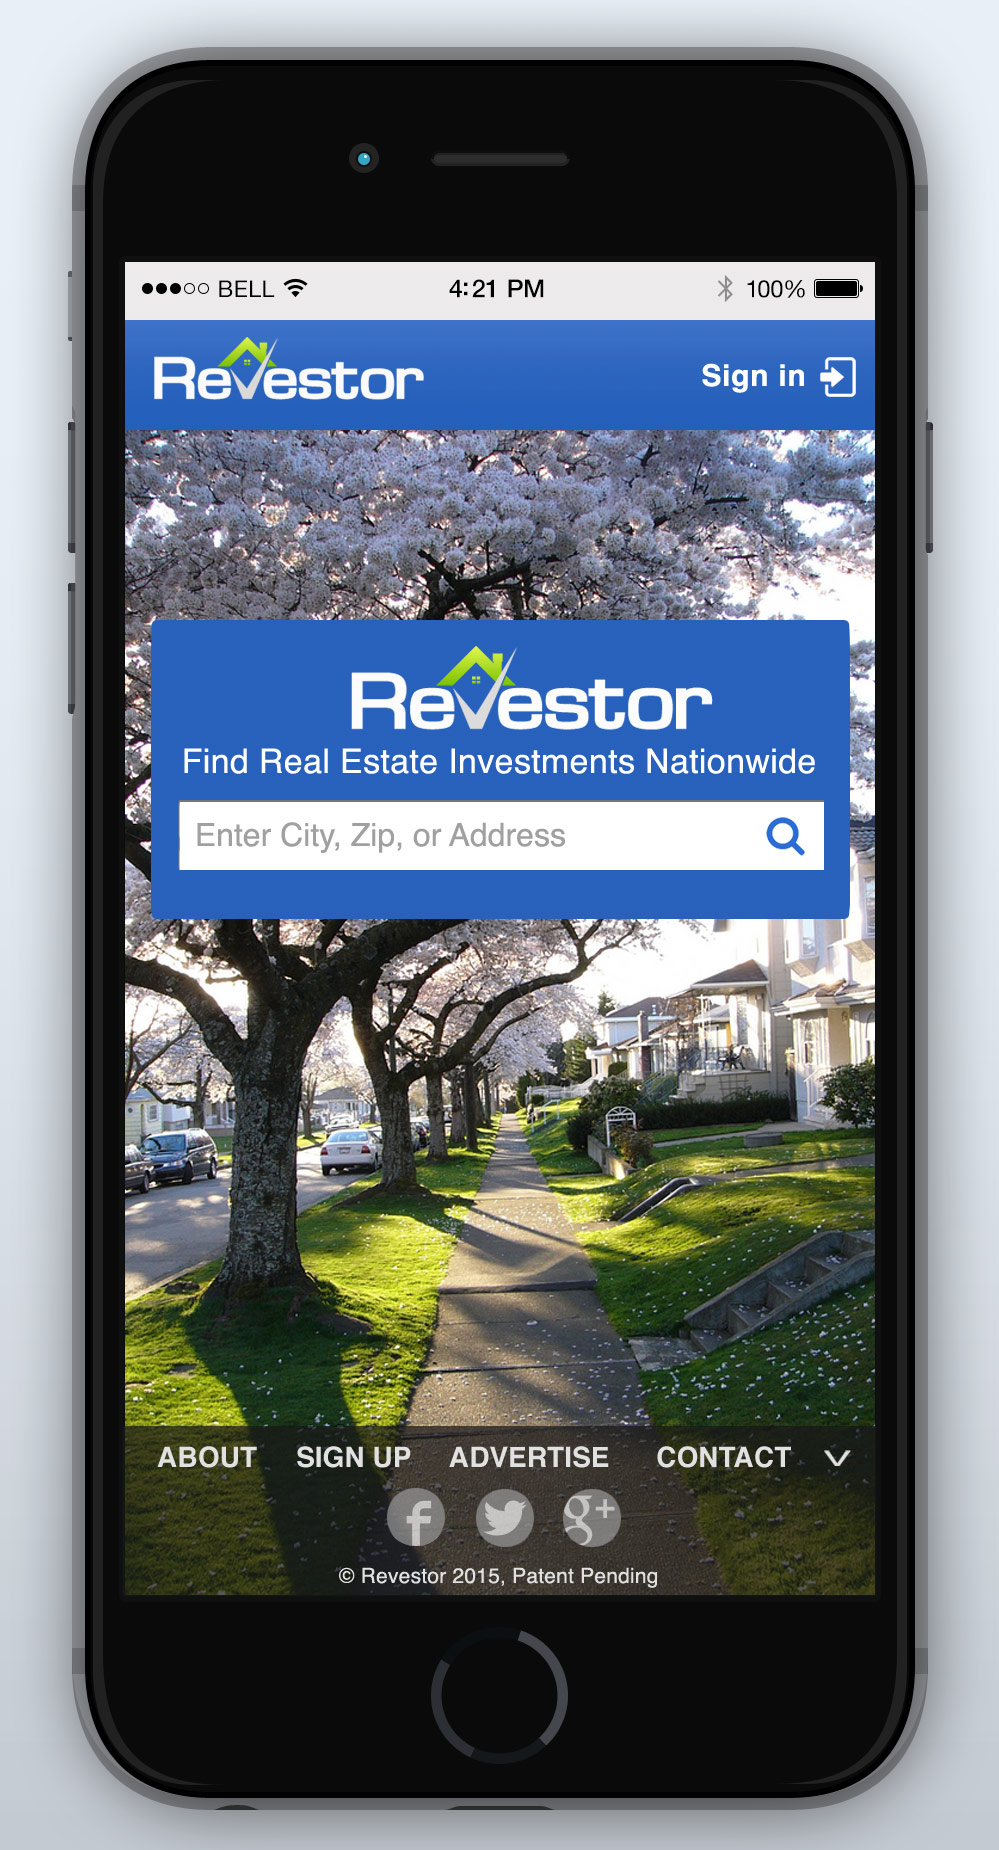 Revestor Is Excited to Announce the Launch of Their New Real Estate